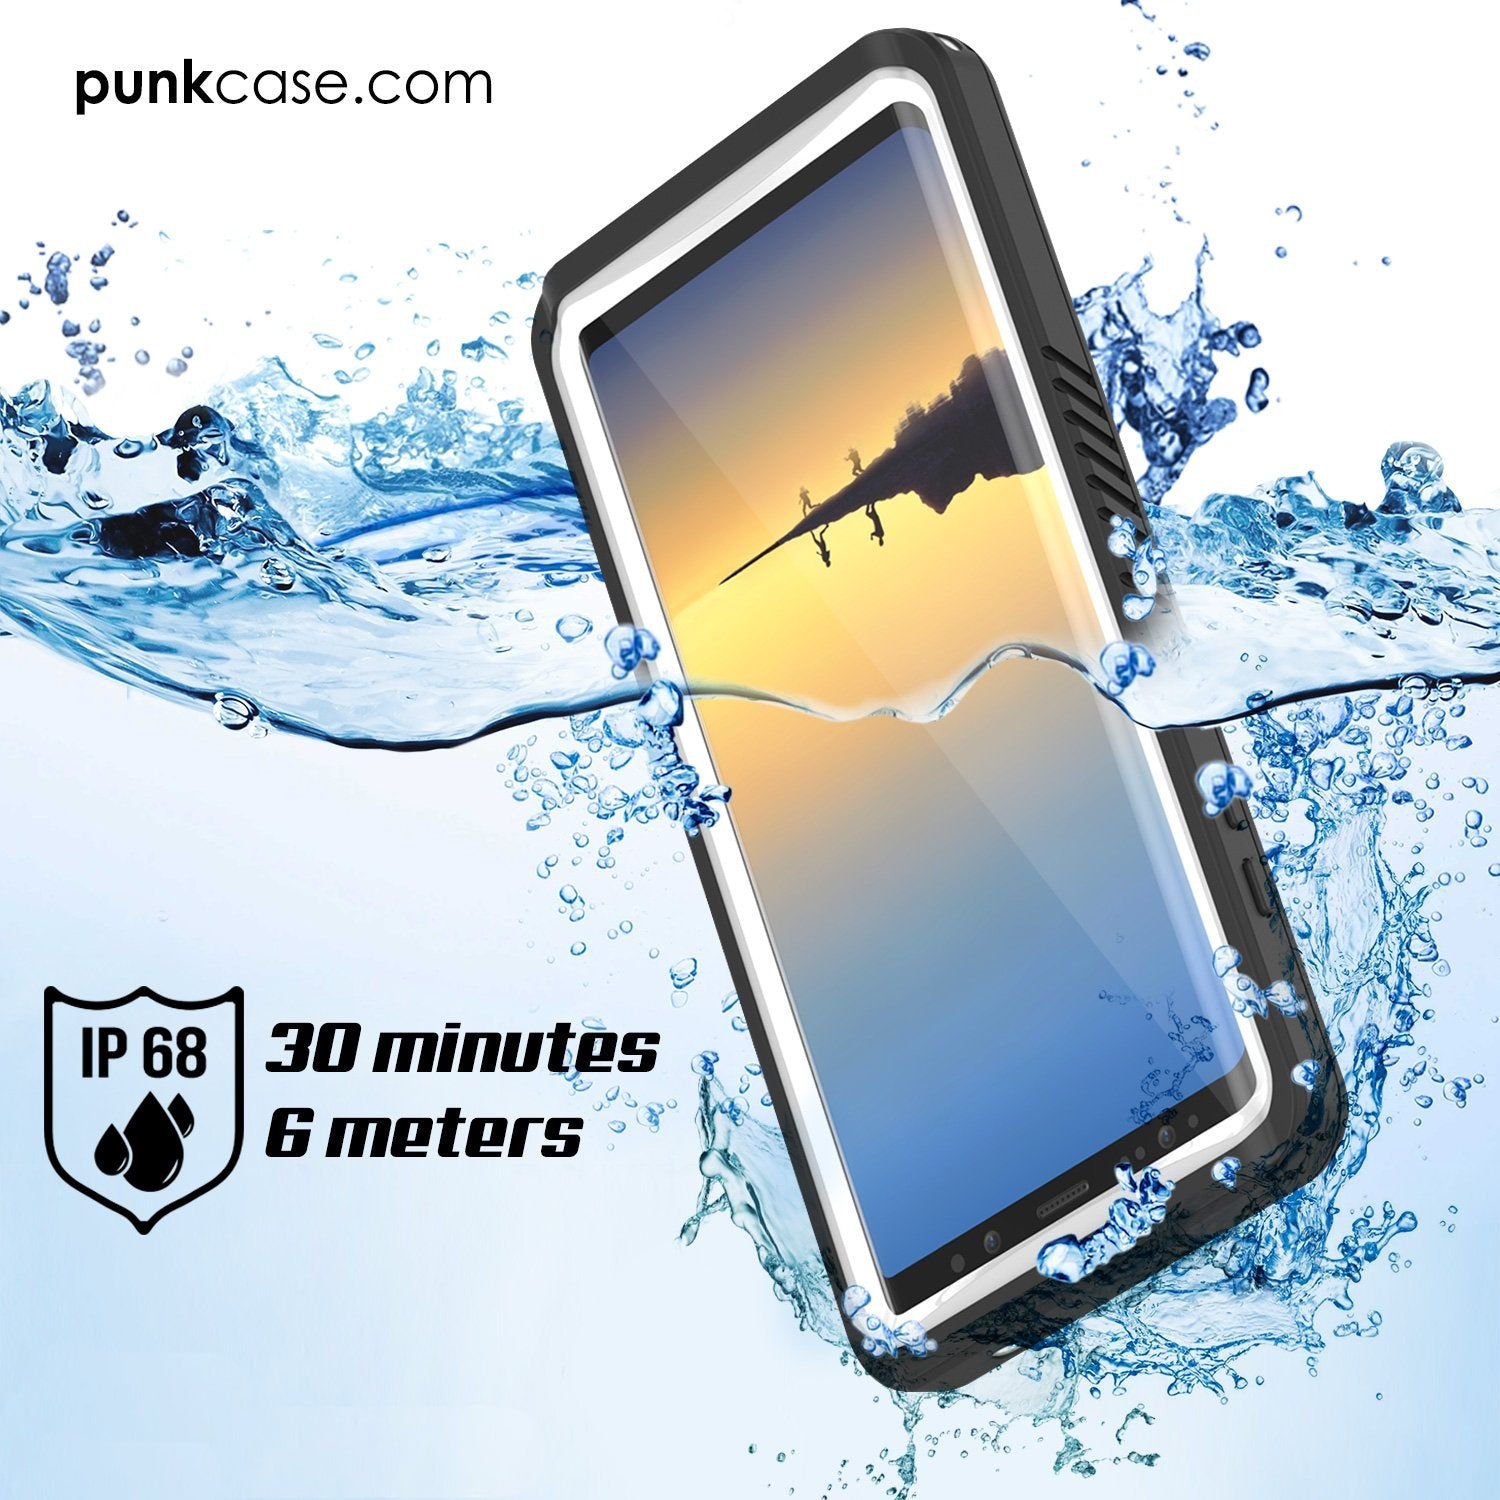 on sale ed760 65423 Galaxy Note 8 Punkcase Extreme Series W/ Built In Screen Case White